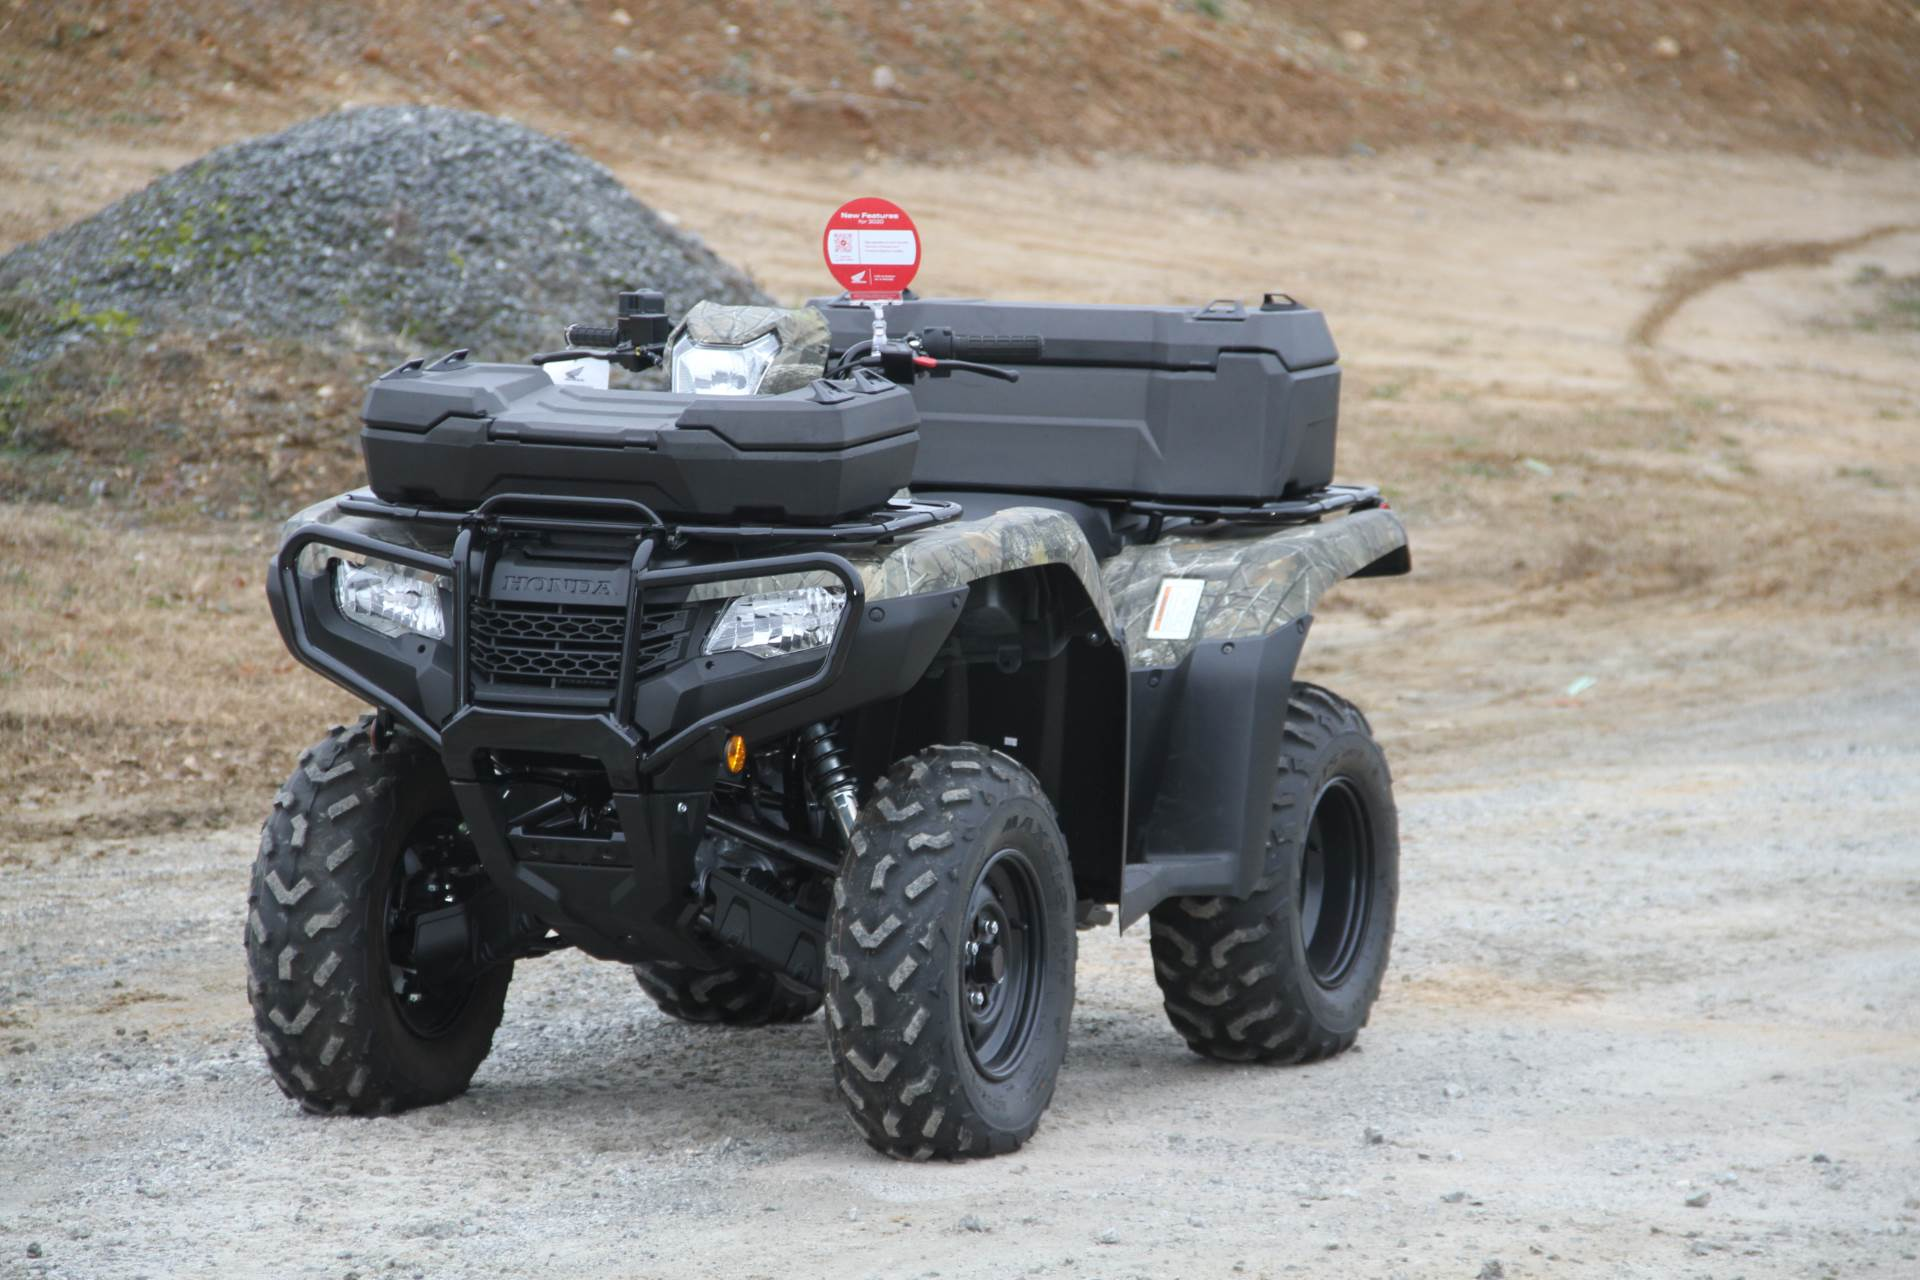 2020 Honda FourTrax Rancher 4x4 in Hendersonville, North Carolina - Photo 29